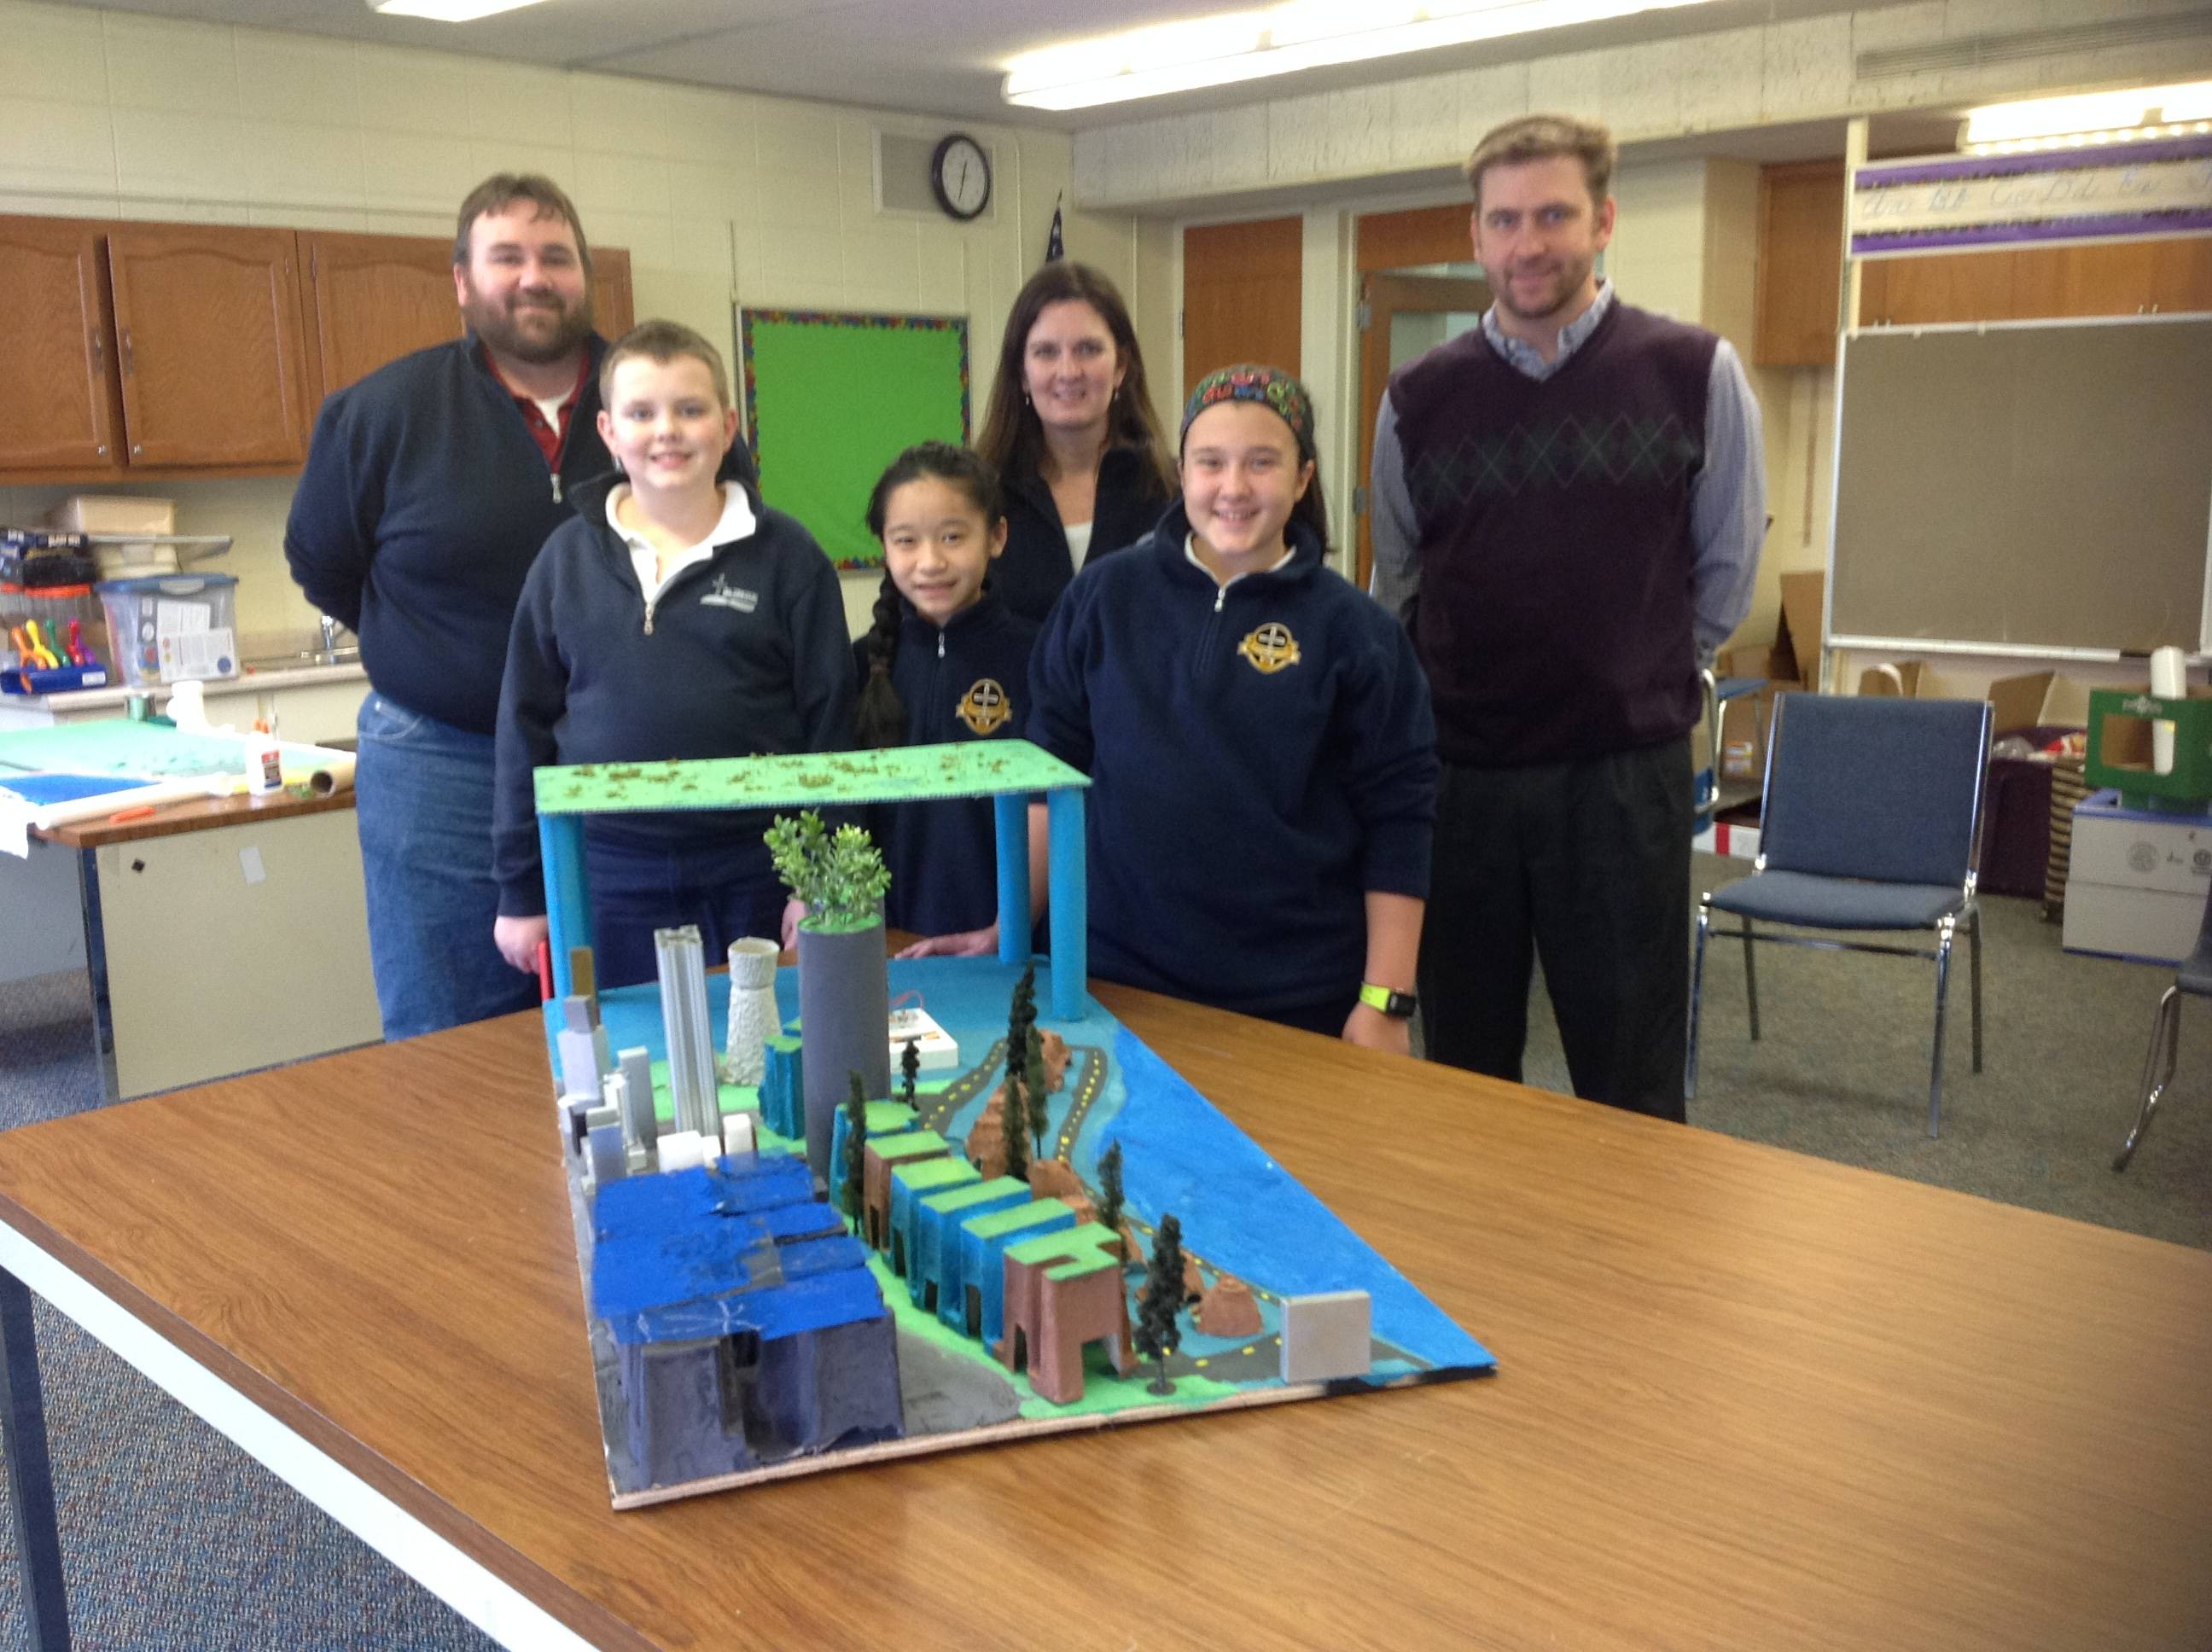 St. Hubert Catholic School students and mentors proudly display their physical model of the city they developed which included a nuclear power plant and elevated farms as well as buildings that utilized solar panels and green roofing.mlarson